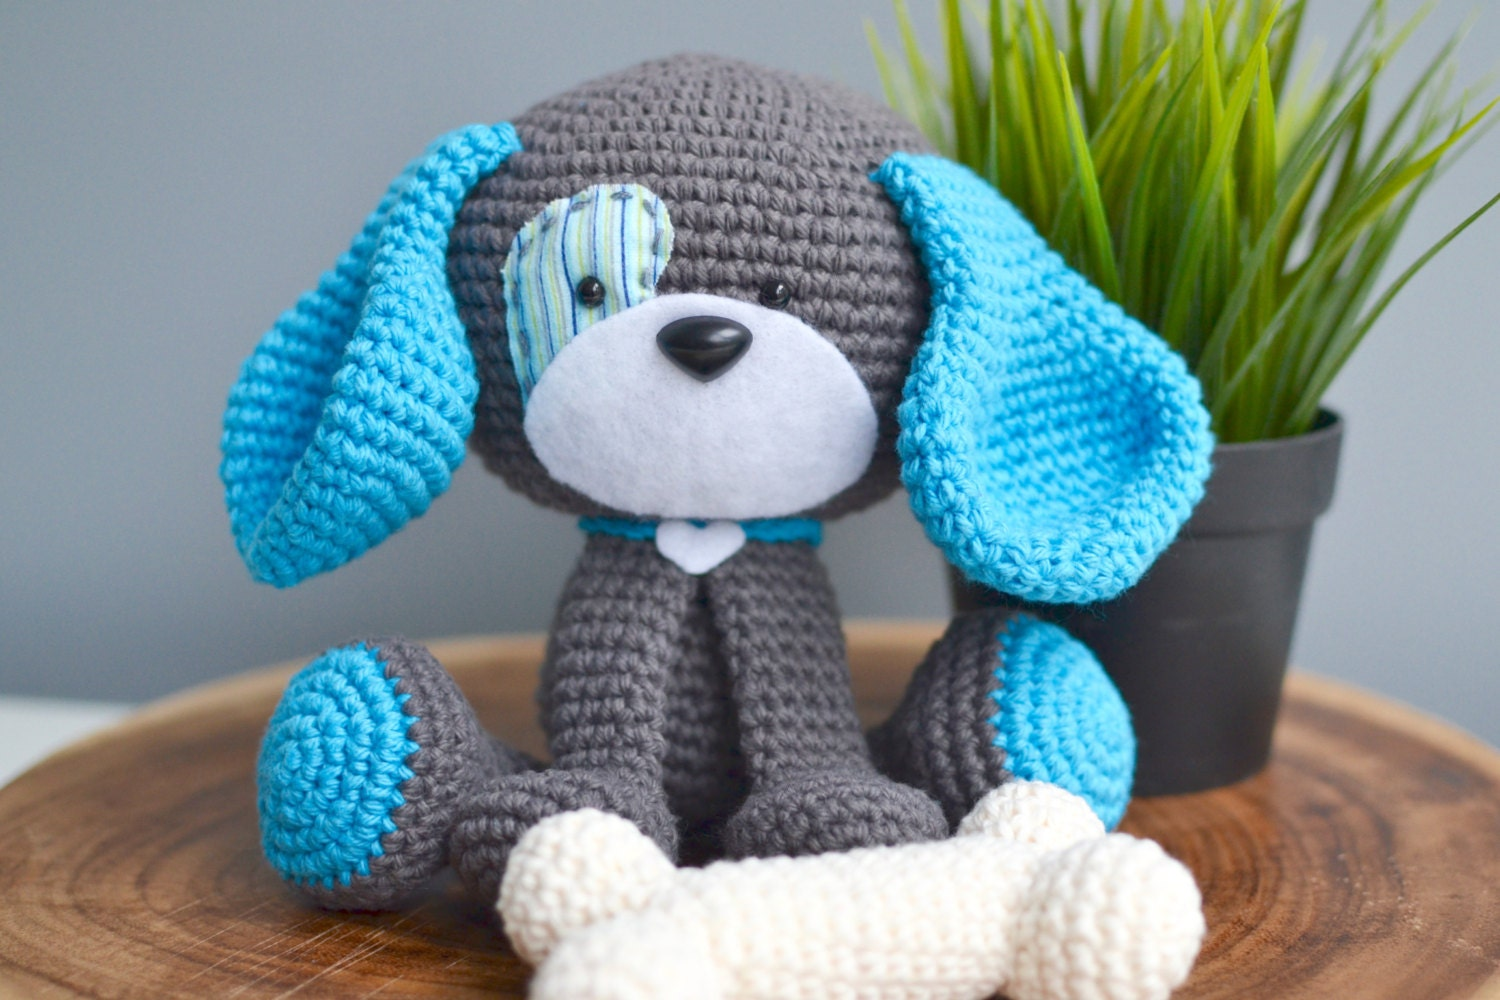 Amigurumi Animals Patterns Free : Cute Dog Crochet Pattern. Domino The Dog Amigurumi Crochet